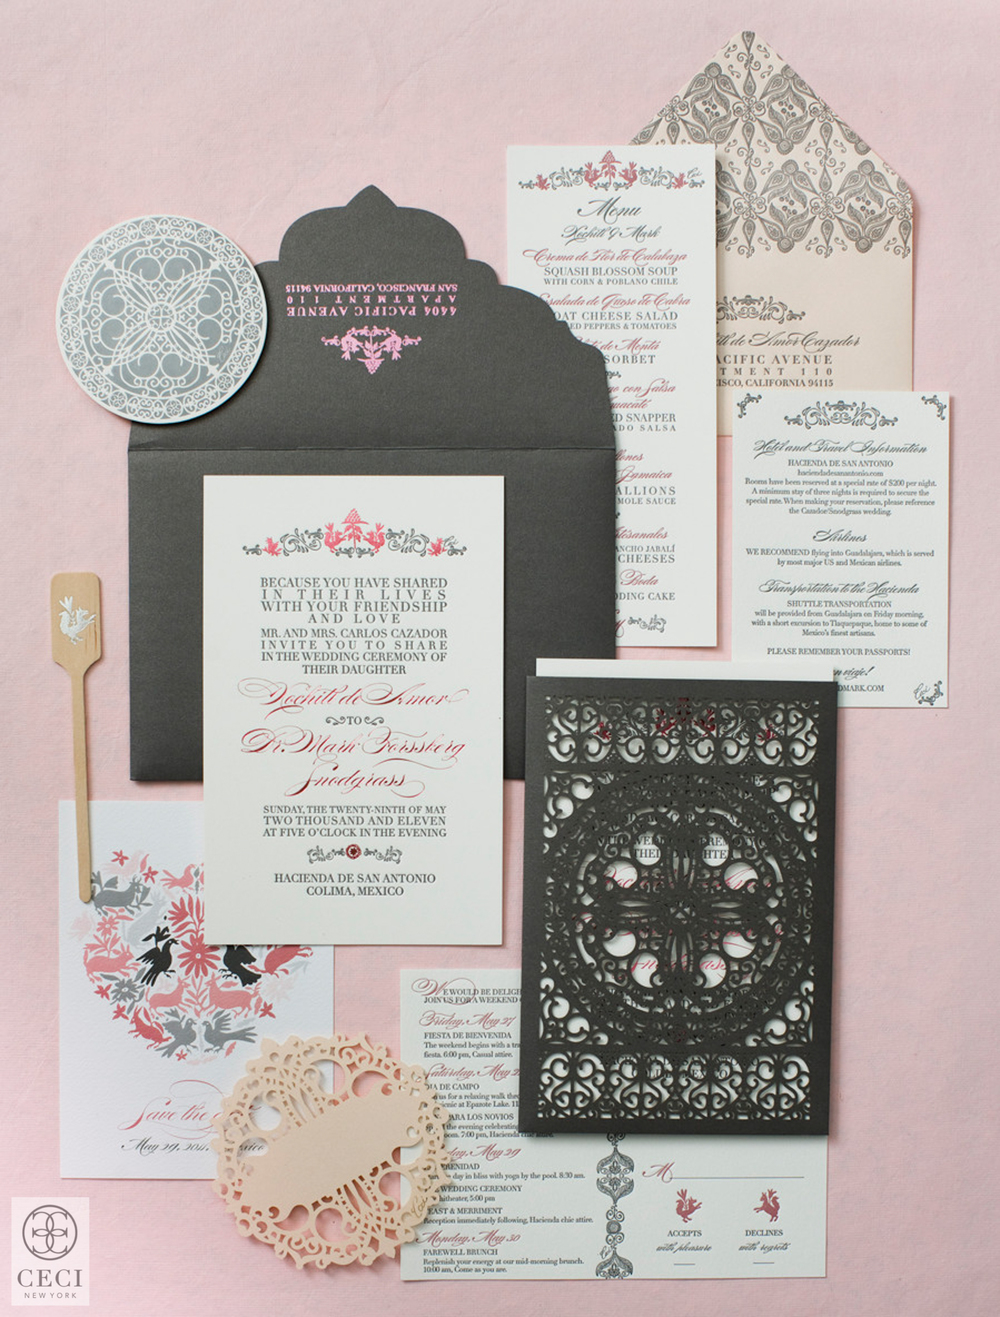 Ceci_New_York_Custom_Luxury_Wedding_BeautyShot_LaserCut_Stationery_Personalized_Couture_Foil_Stamping_Mexico_Otomi_Chic_.jpg